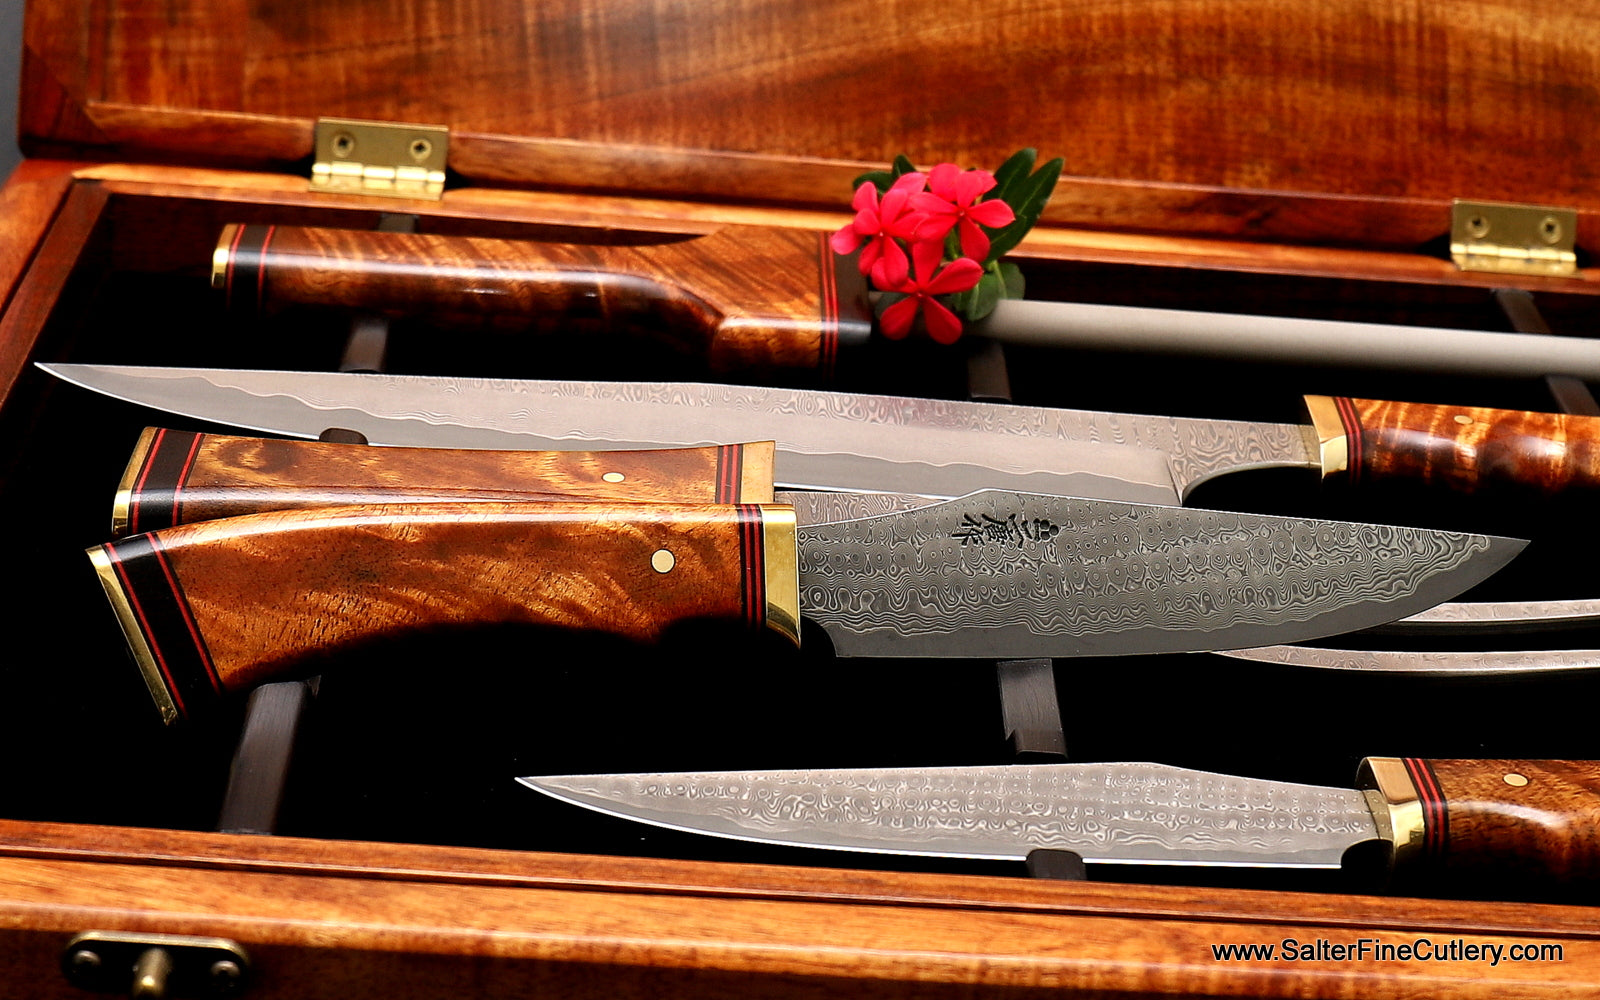 138mm clip point Charybdis design luxury steak knife with brass, red and black accents by Salter Fine Cutlery